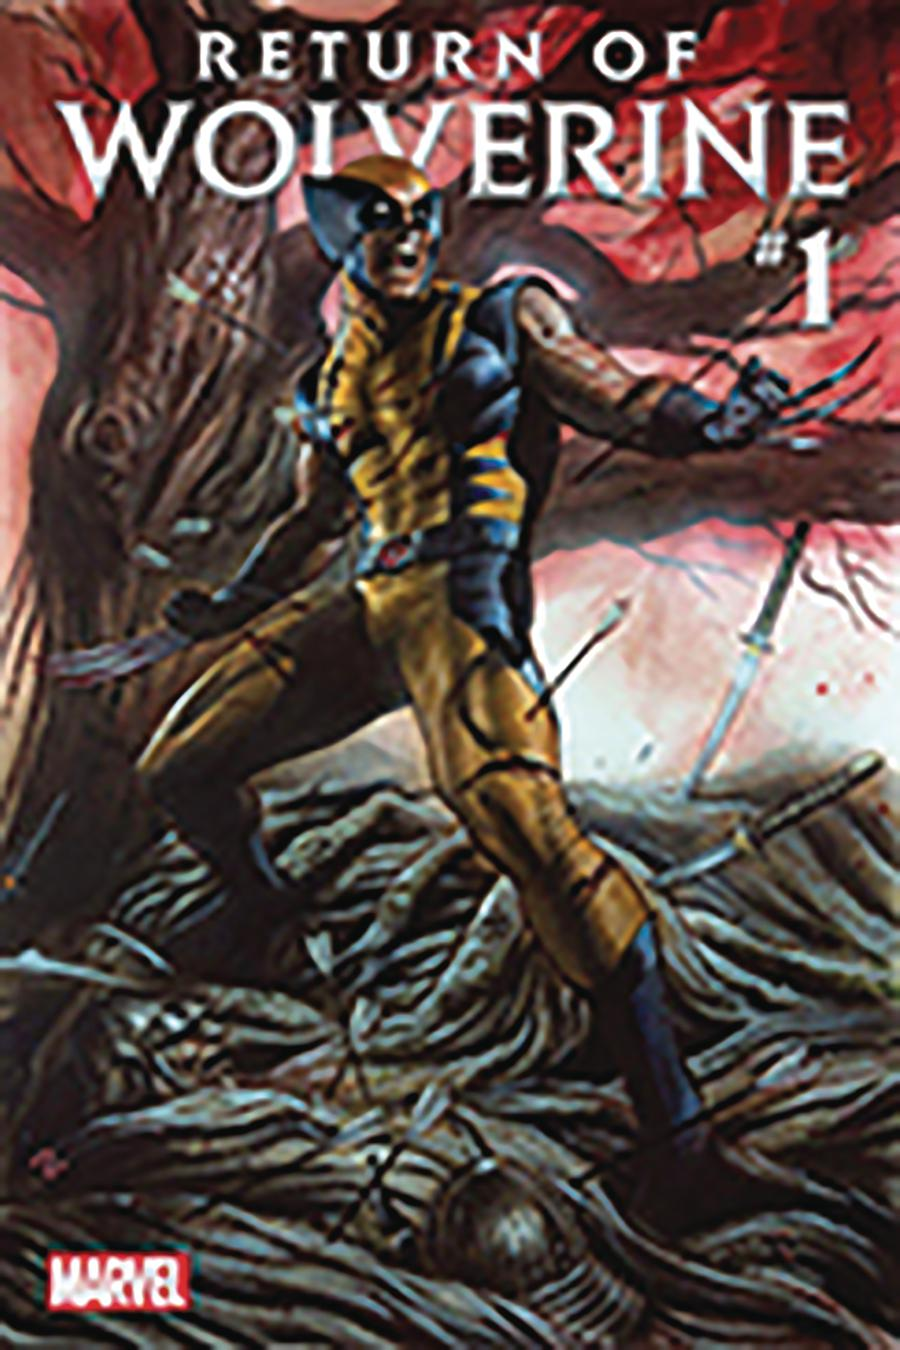 Return Of Wolverine #1 Cover Z-E DF CSA Exclusive Adi Granov Variant Cover Signed By Adi Granov